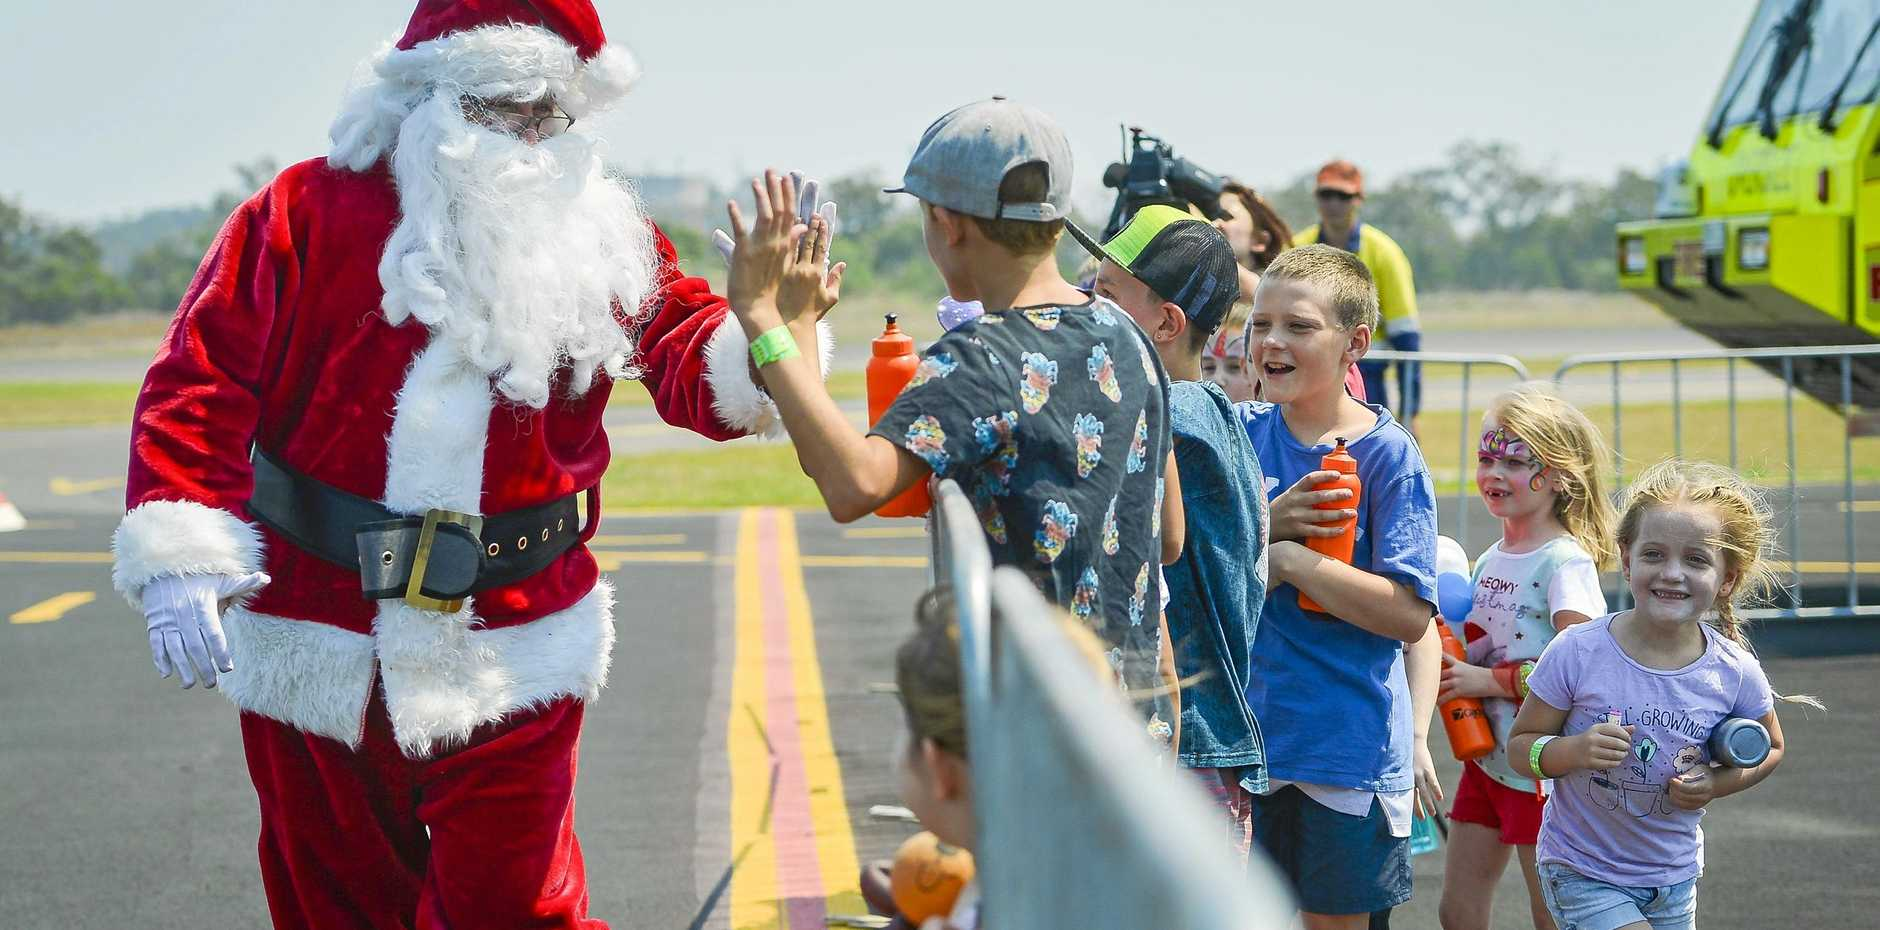 Santa's arrival via helicopter at Gladstone Airport Coropration's Santa from the Skies event.